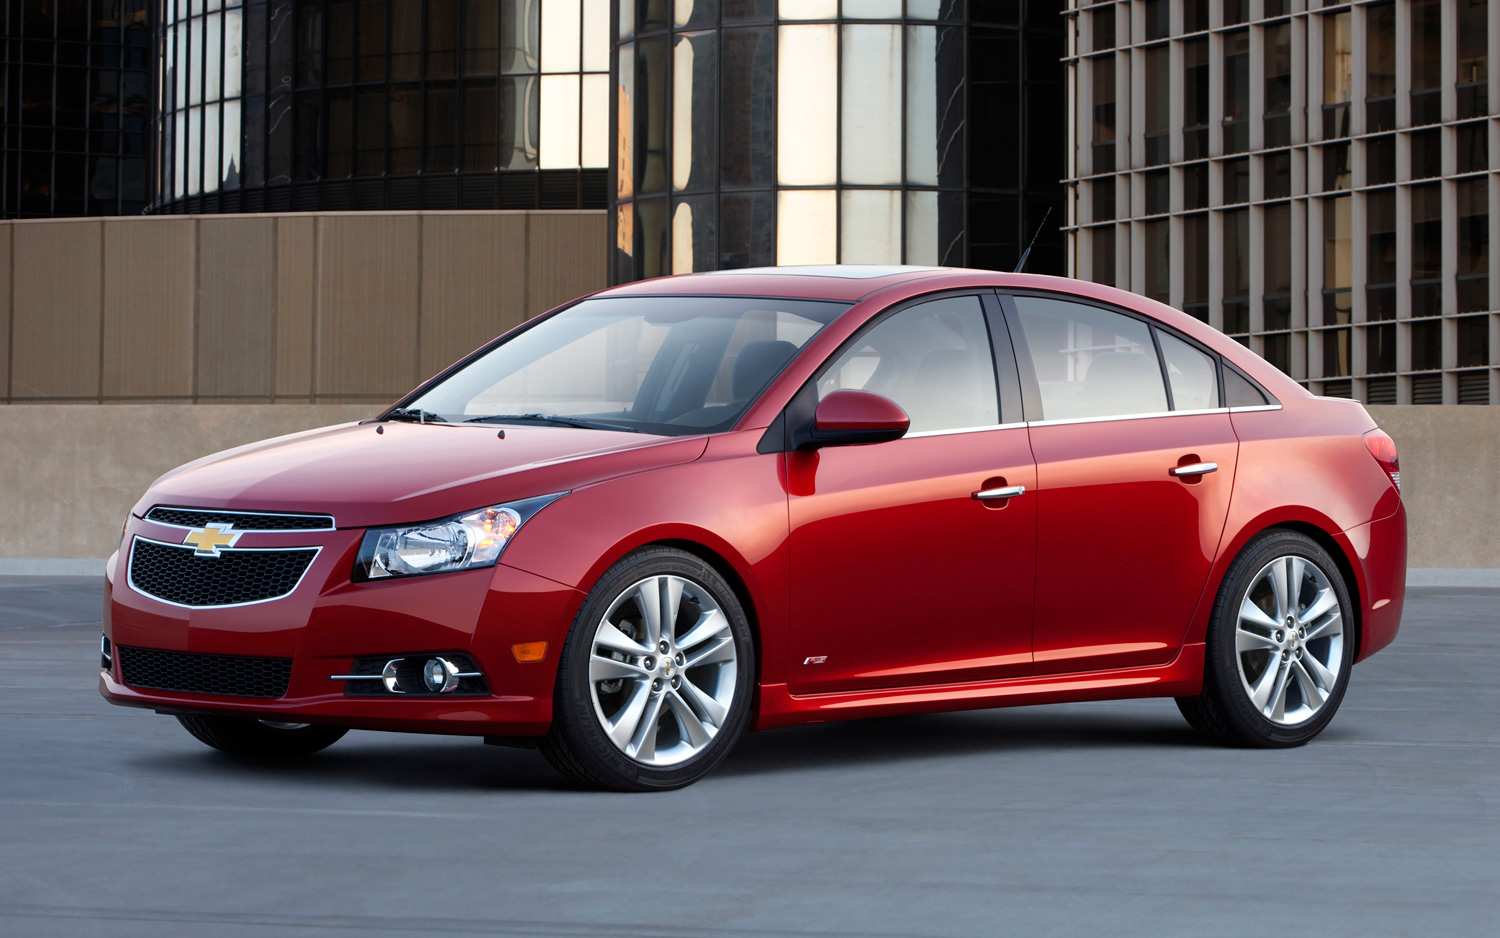 hight resolution of chevrolet cruze 2013 tendr un nuevo sistema de airbag de ventilaci n flexible